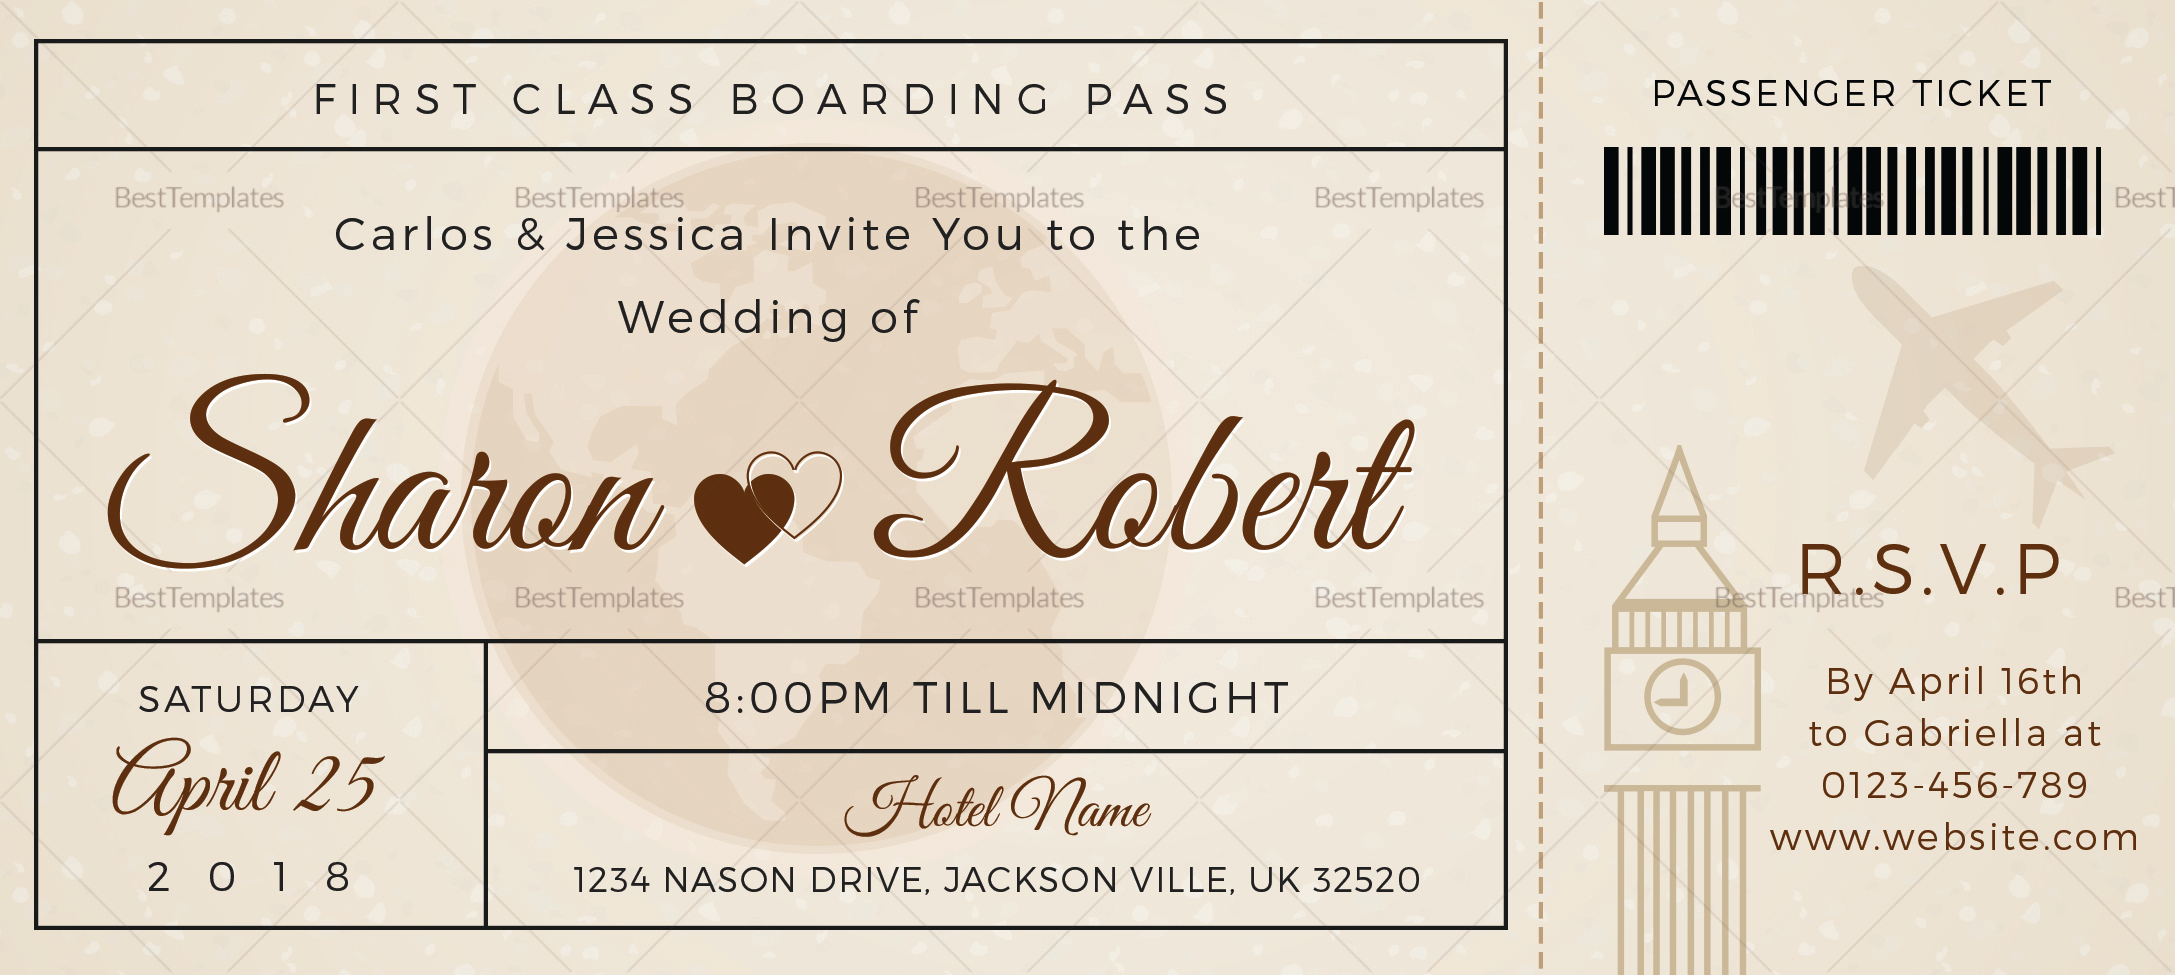 Boarding Pass Wedding Invitations Template: Wedding Boarding Pass Invitation Ticket Design Template In